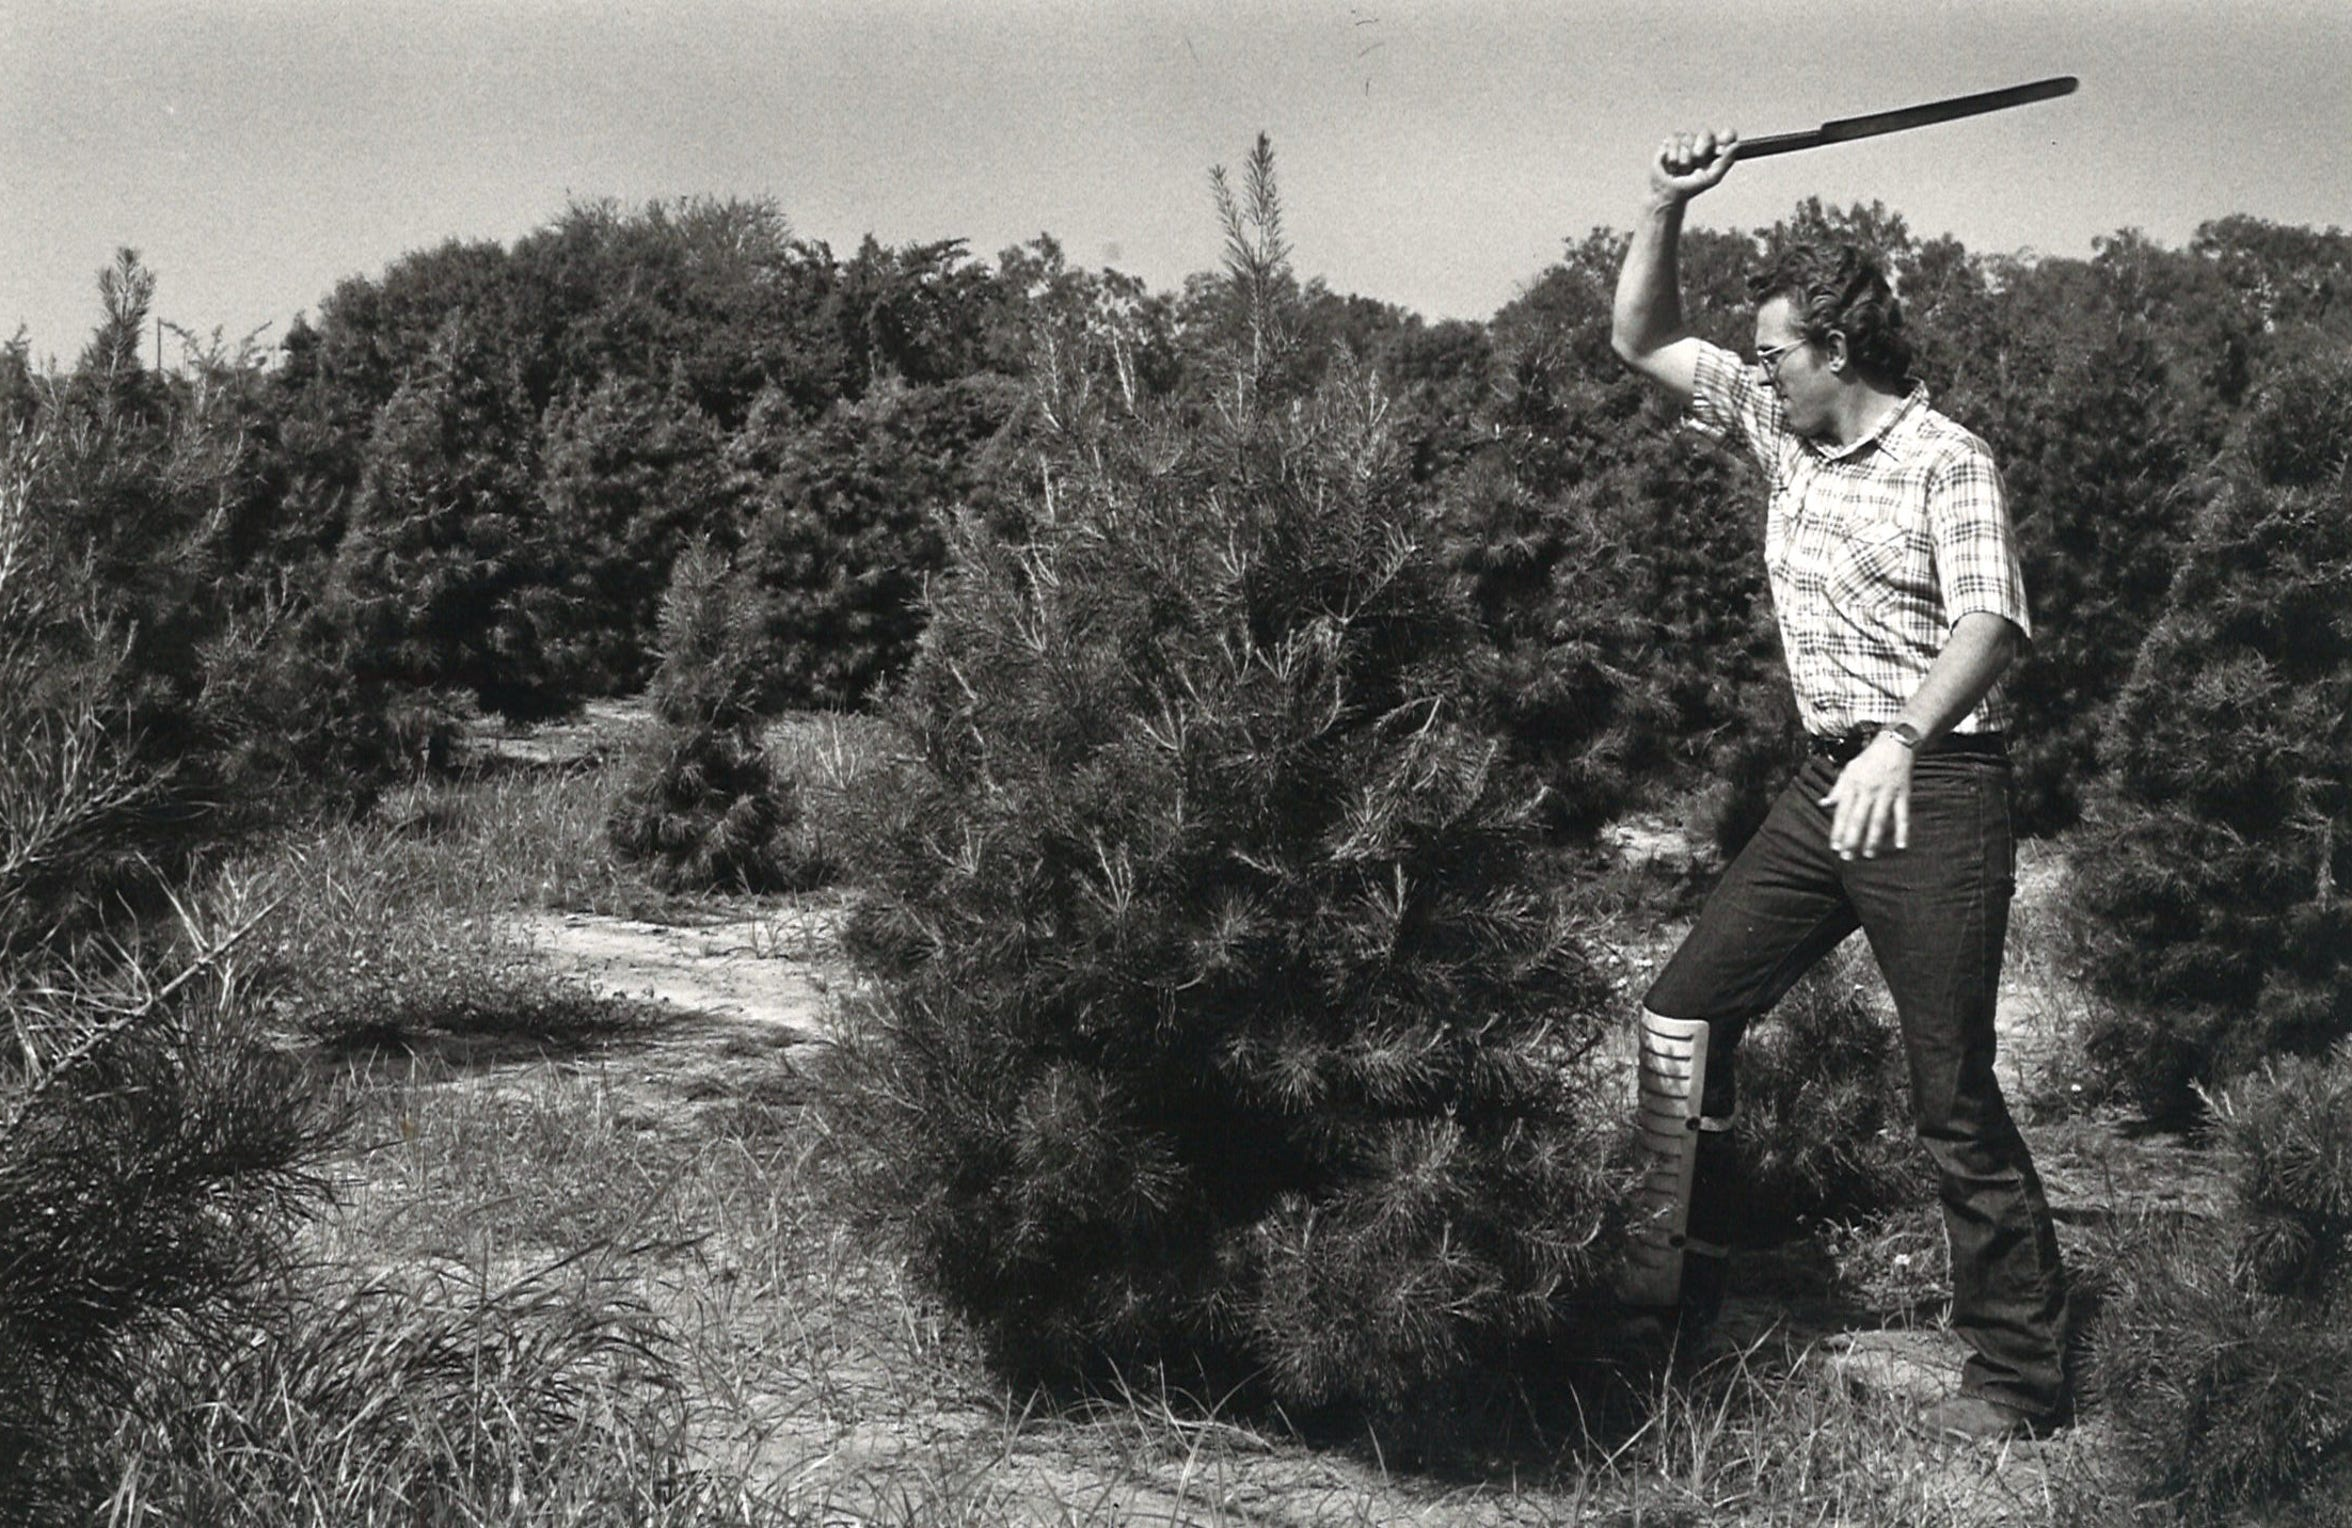 Phillip Storm of Storm Nursery in Premont, TX, demonstrates shaping a pine tree suitable for Christmas tree sales in June 1983.